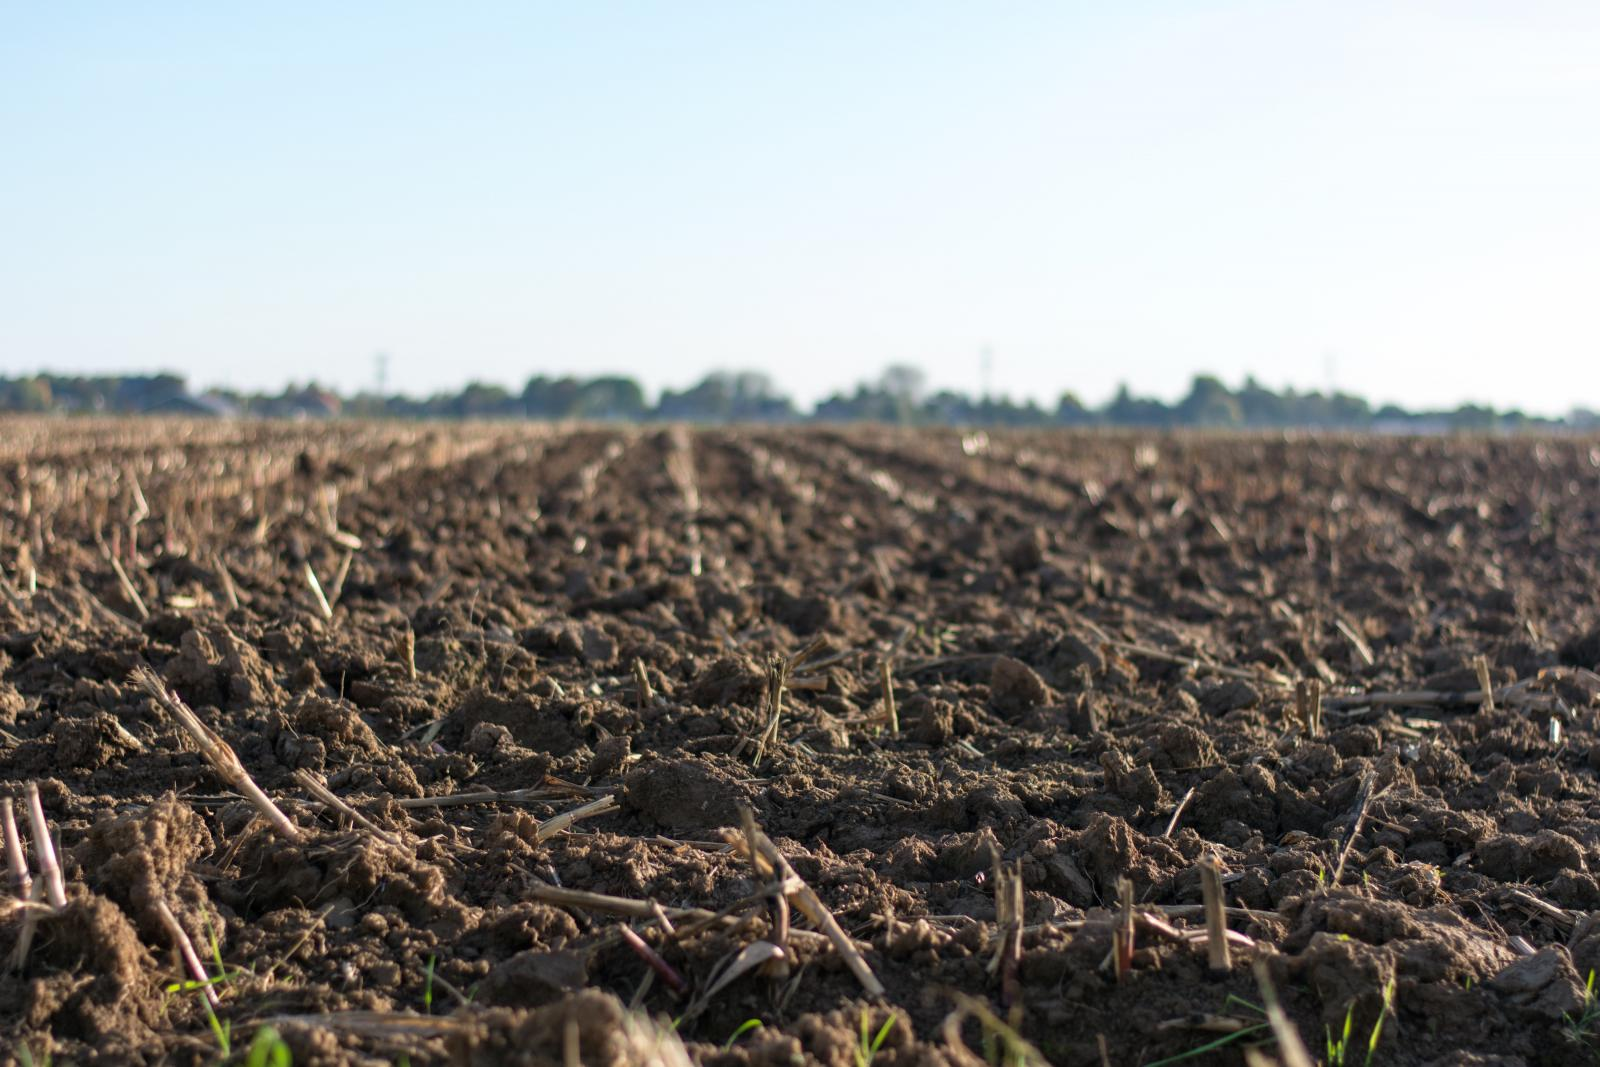 Farm soil. Photo credit: Pexels